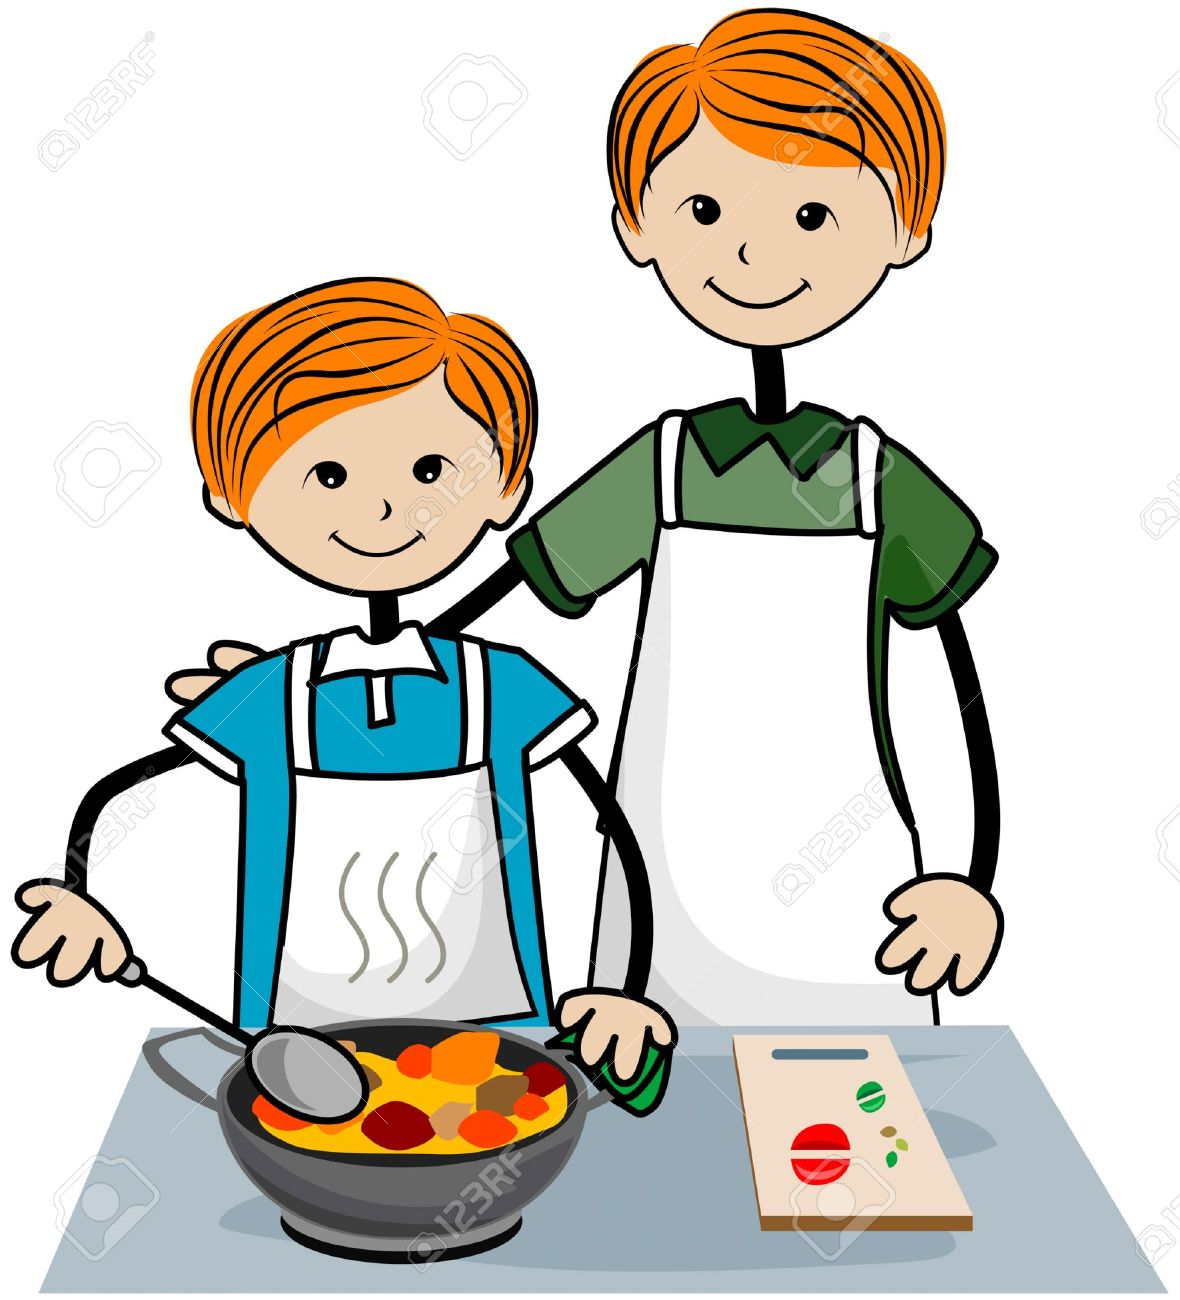 cooking clipart child